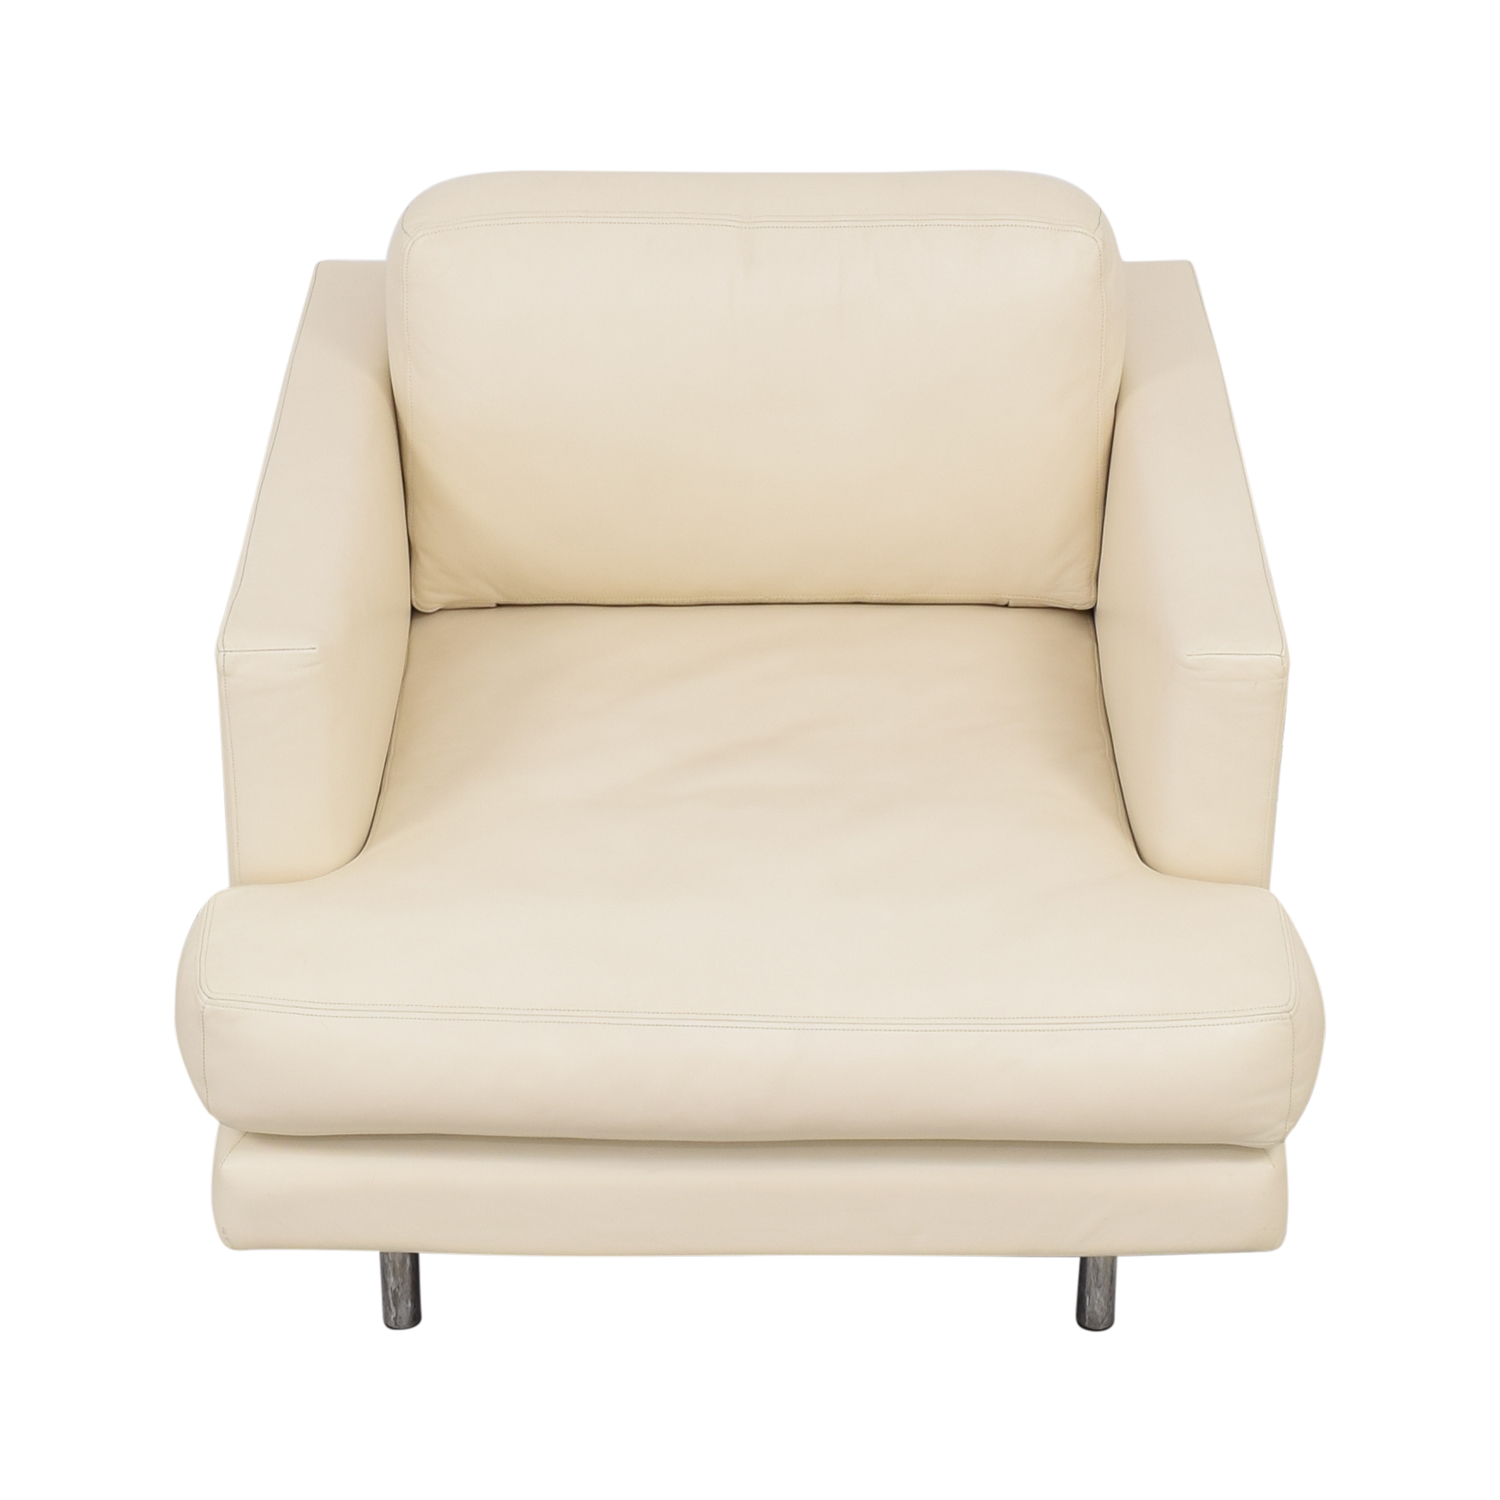 64 Off Knoll Knoll D Urso Residential Lounge Chair Chairs